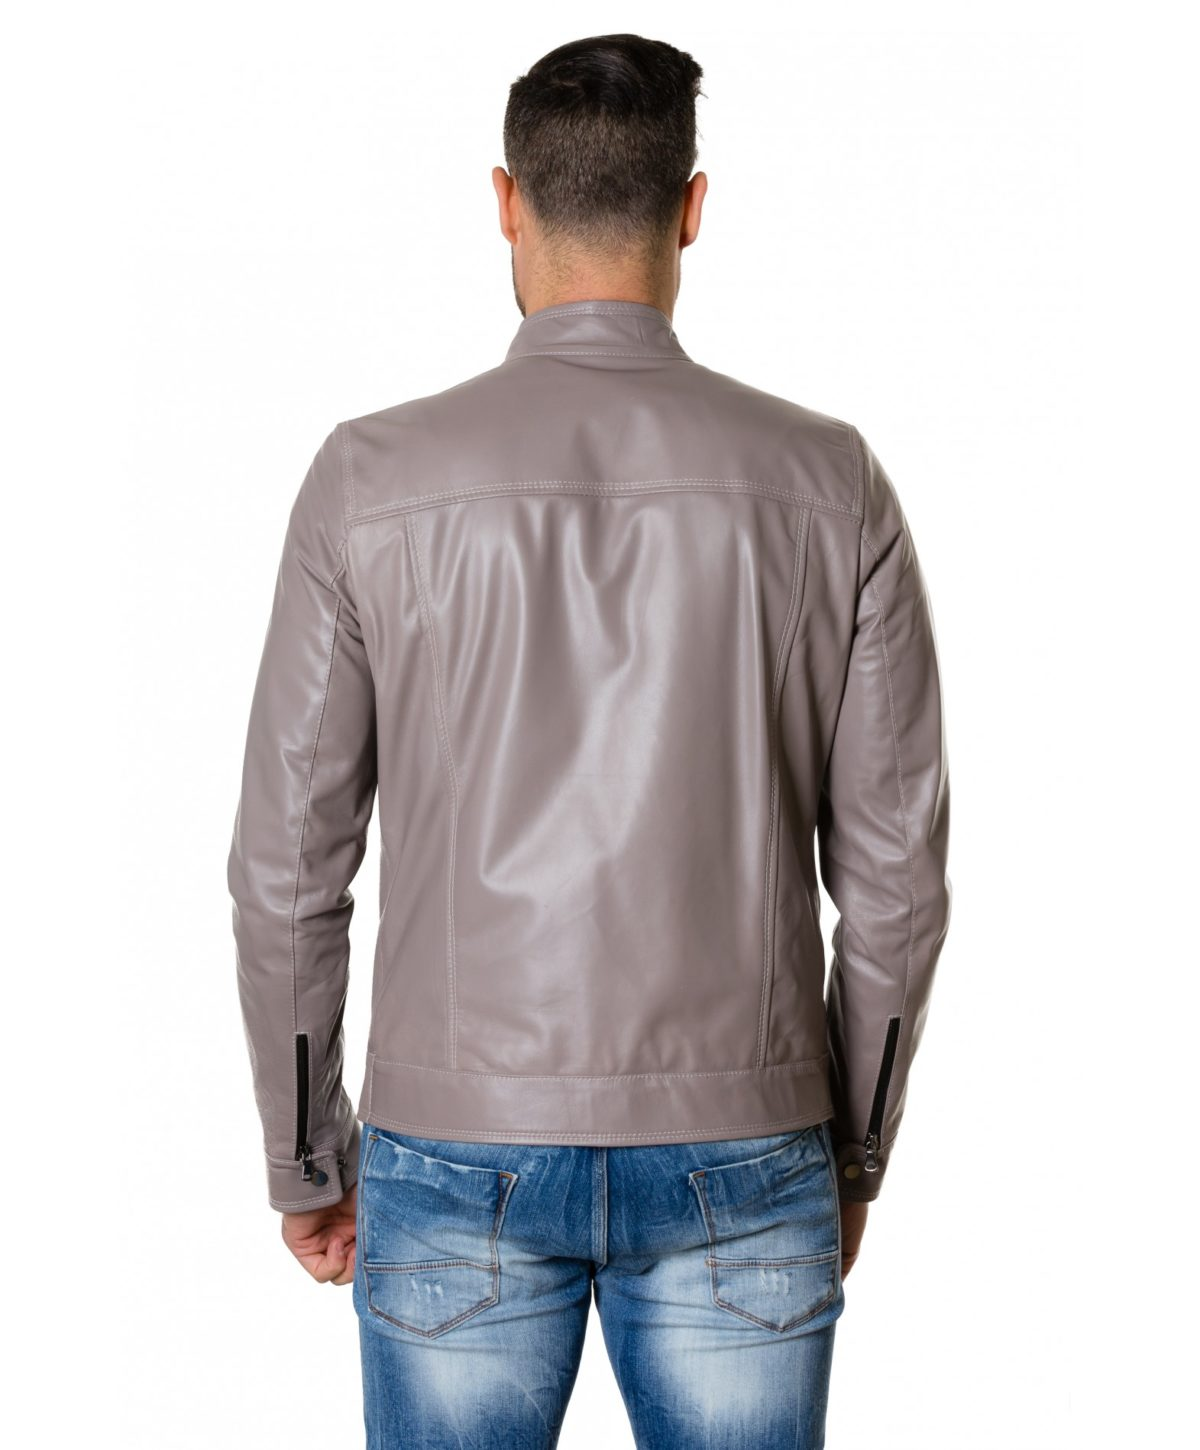 hamilton-grey-colour-lamb-leather-jacket-mao-collar-vintage-aspect (3)